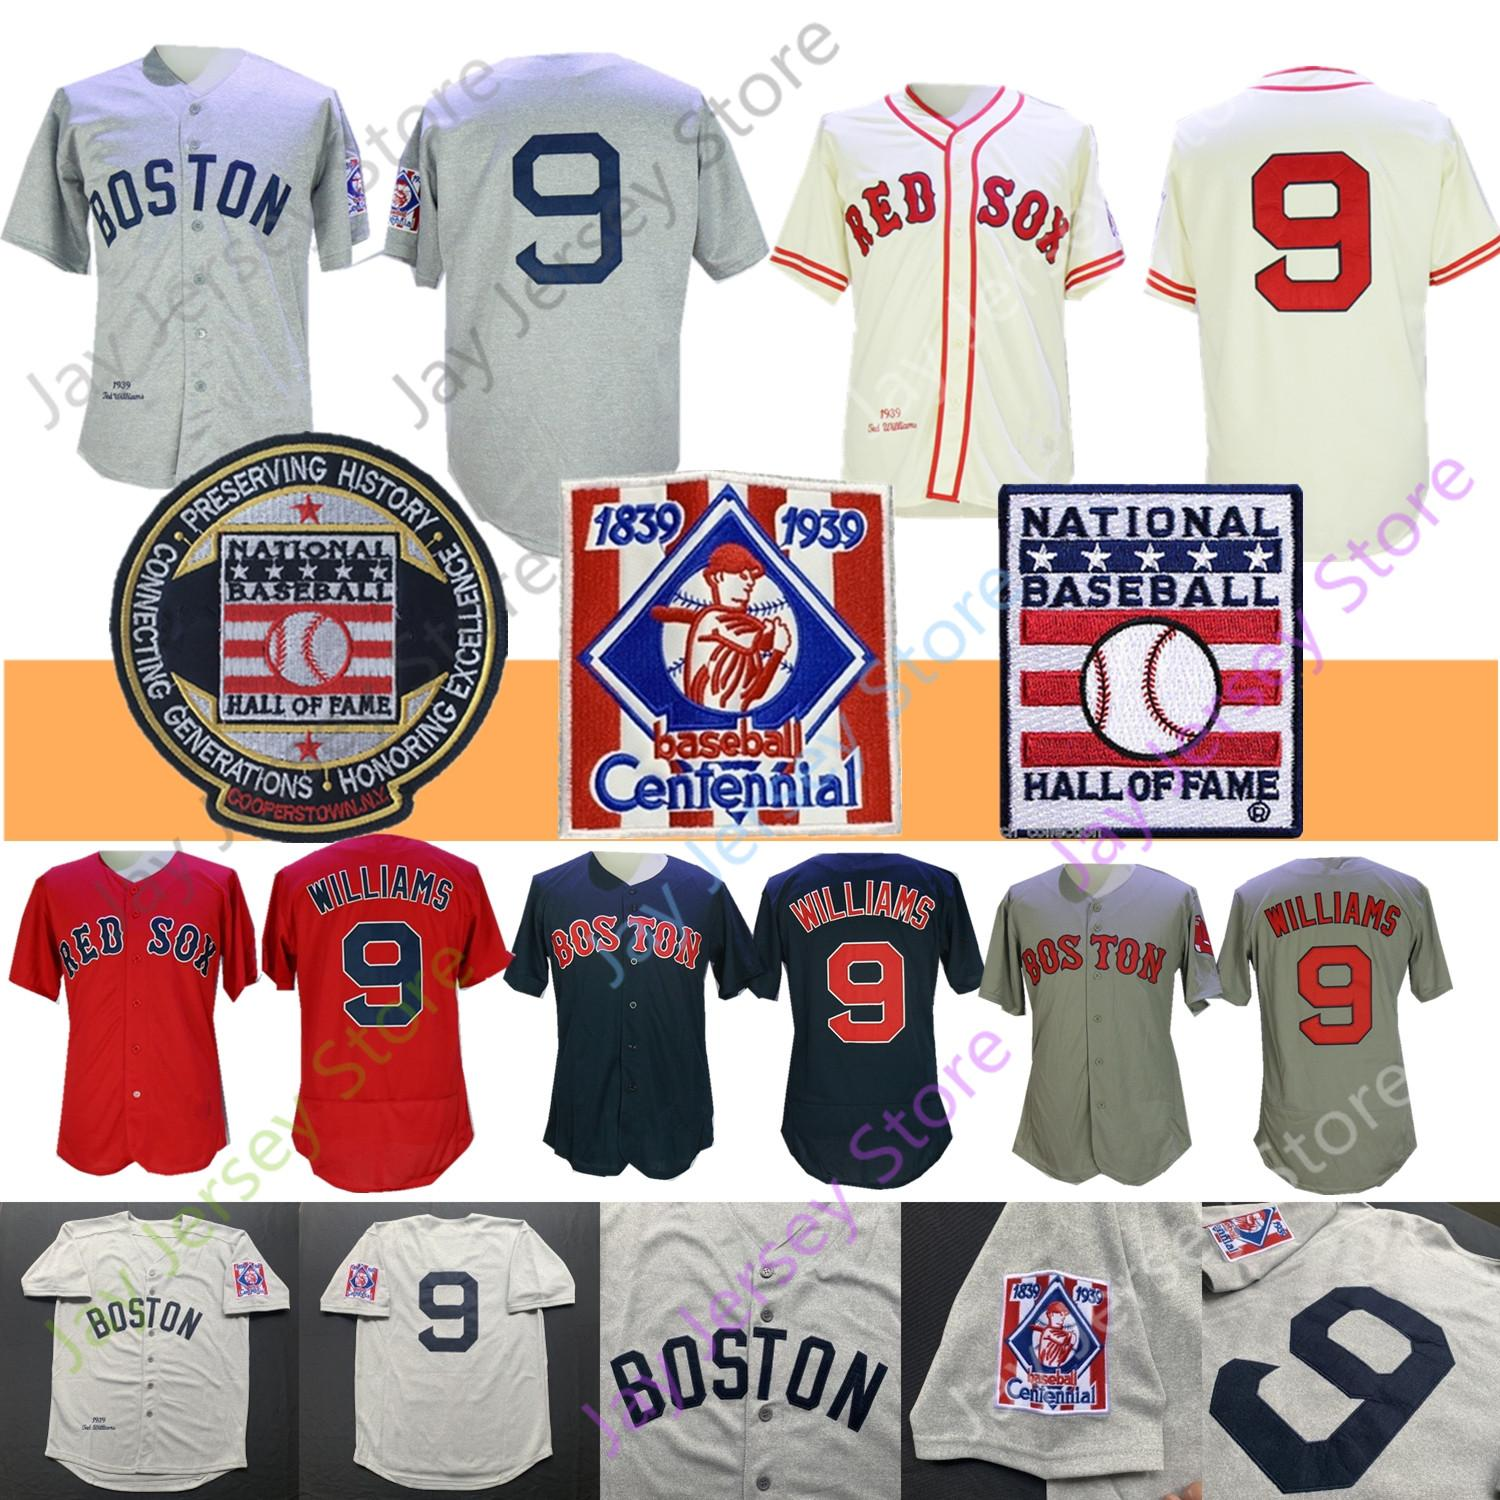 Ted Williams Jersey Coopers-ville 1939 Baseball Chanvre-Gray Hall Of Fame Blanc Bleu Crème Gris Orange Tous les hommes Taille M Cousu-3XL